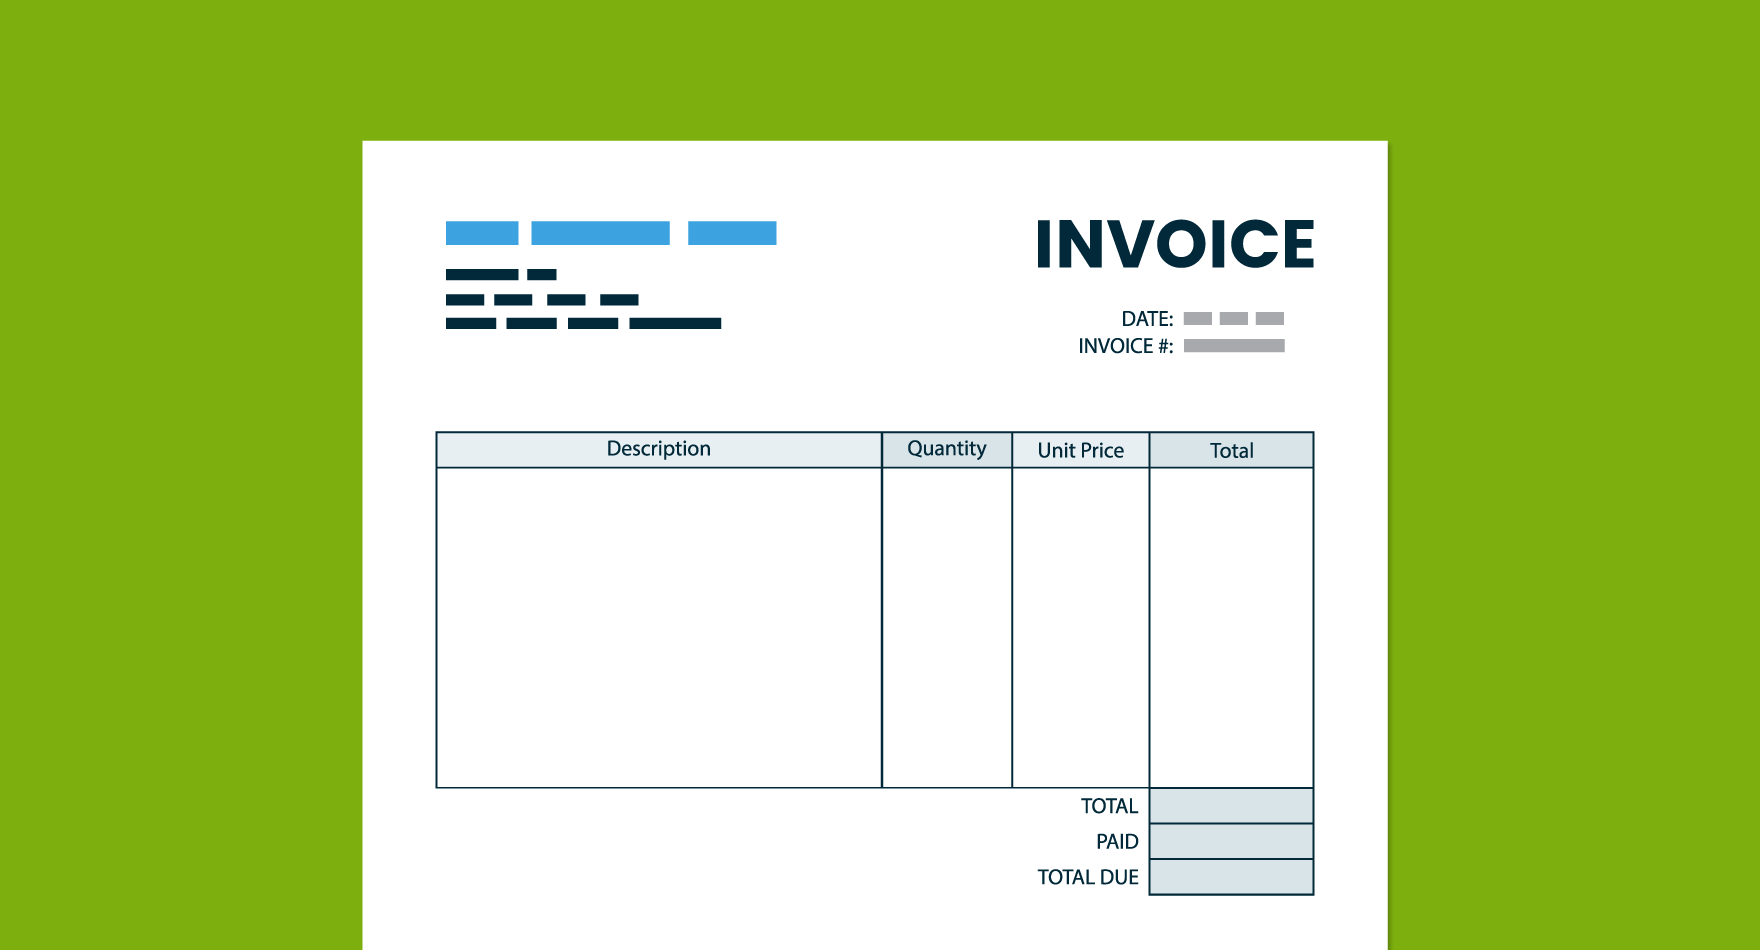 back to basics invoices and the invoicing process - Invoice